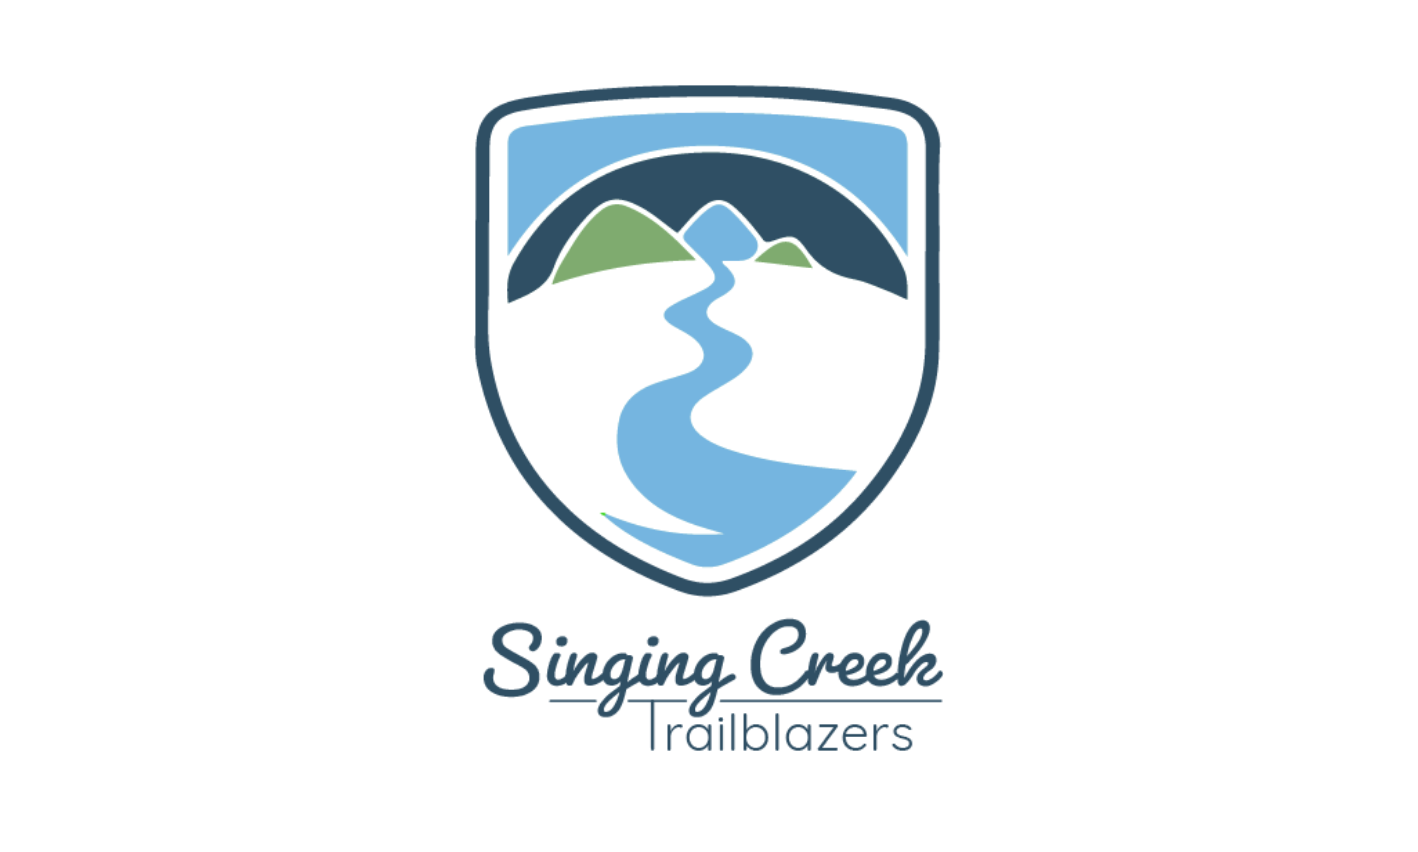 Singing Creek Trailblazers Logo Full Color